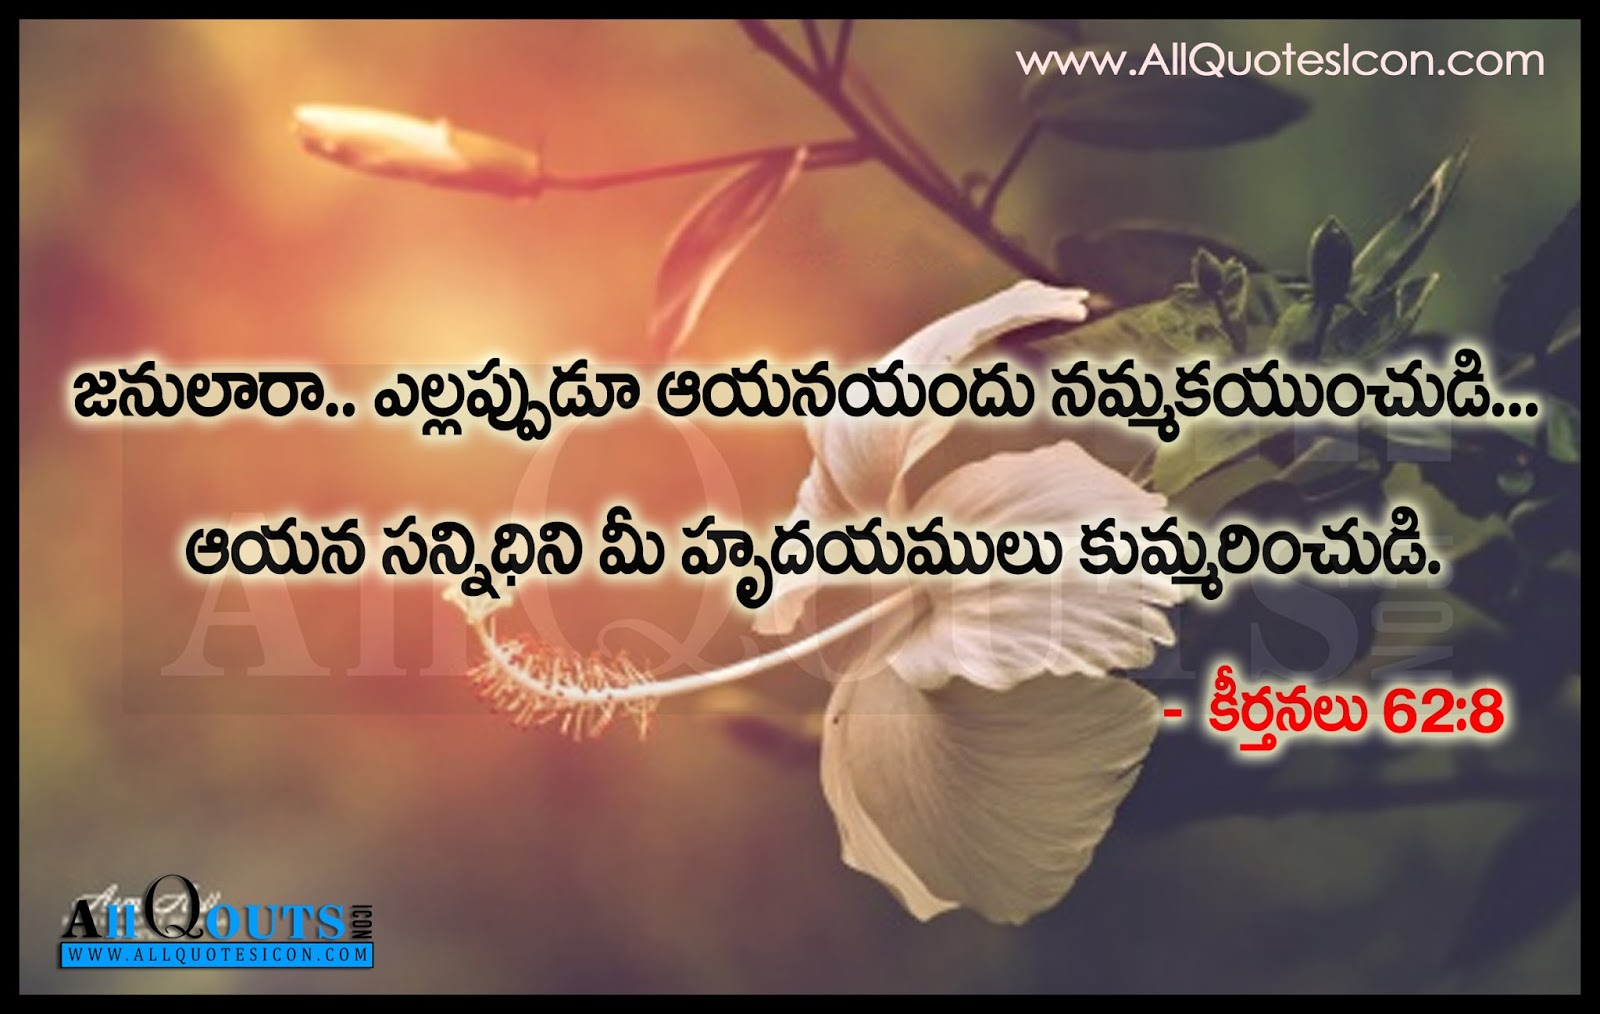 Believe Lord Jesus Sayings And Quotes In Telugu Hd Wallpapers Best